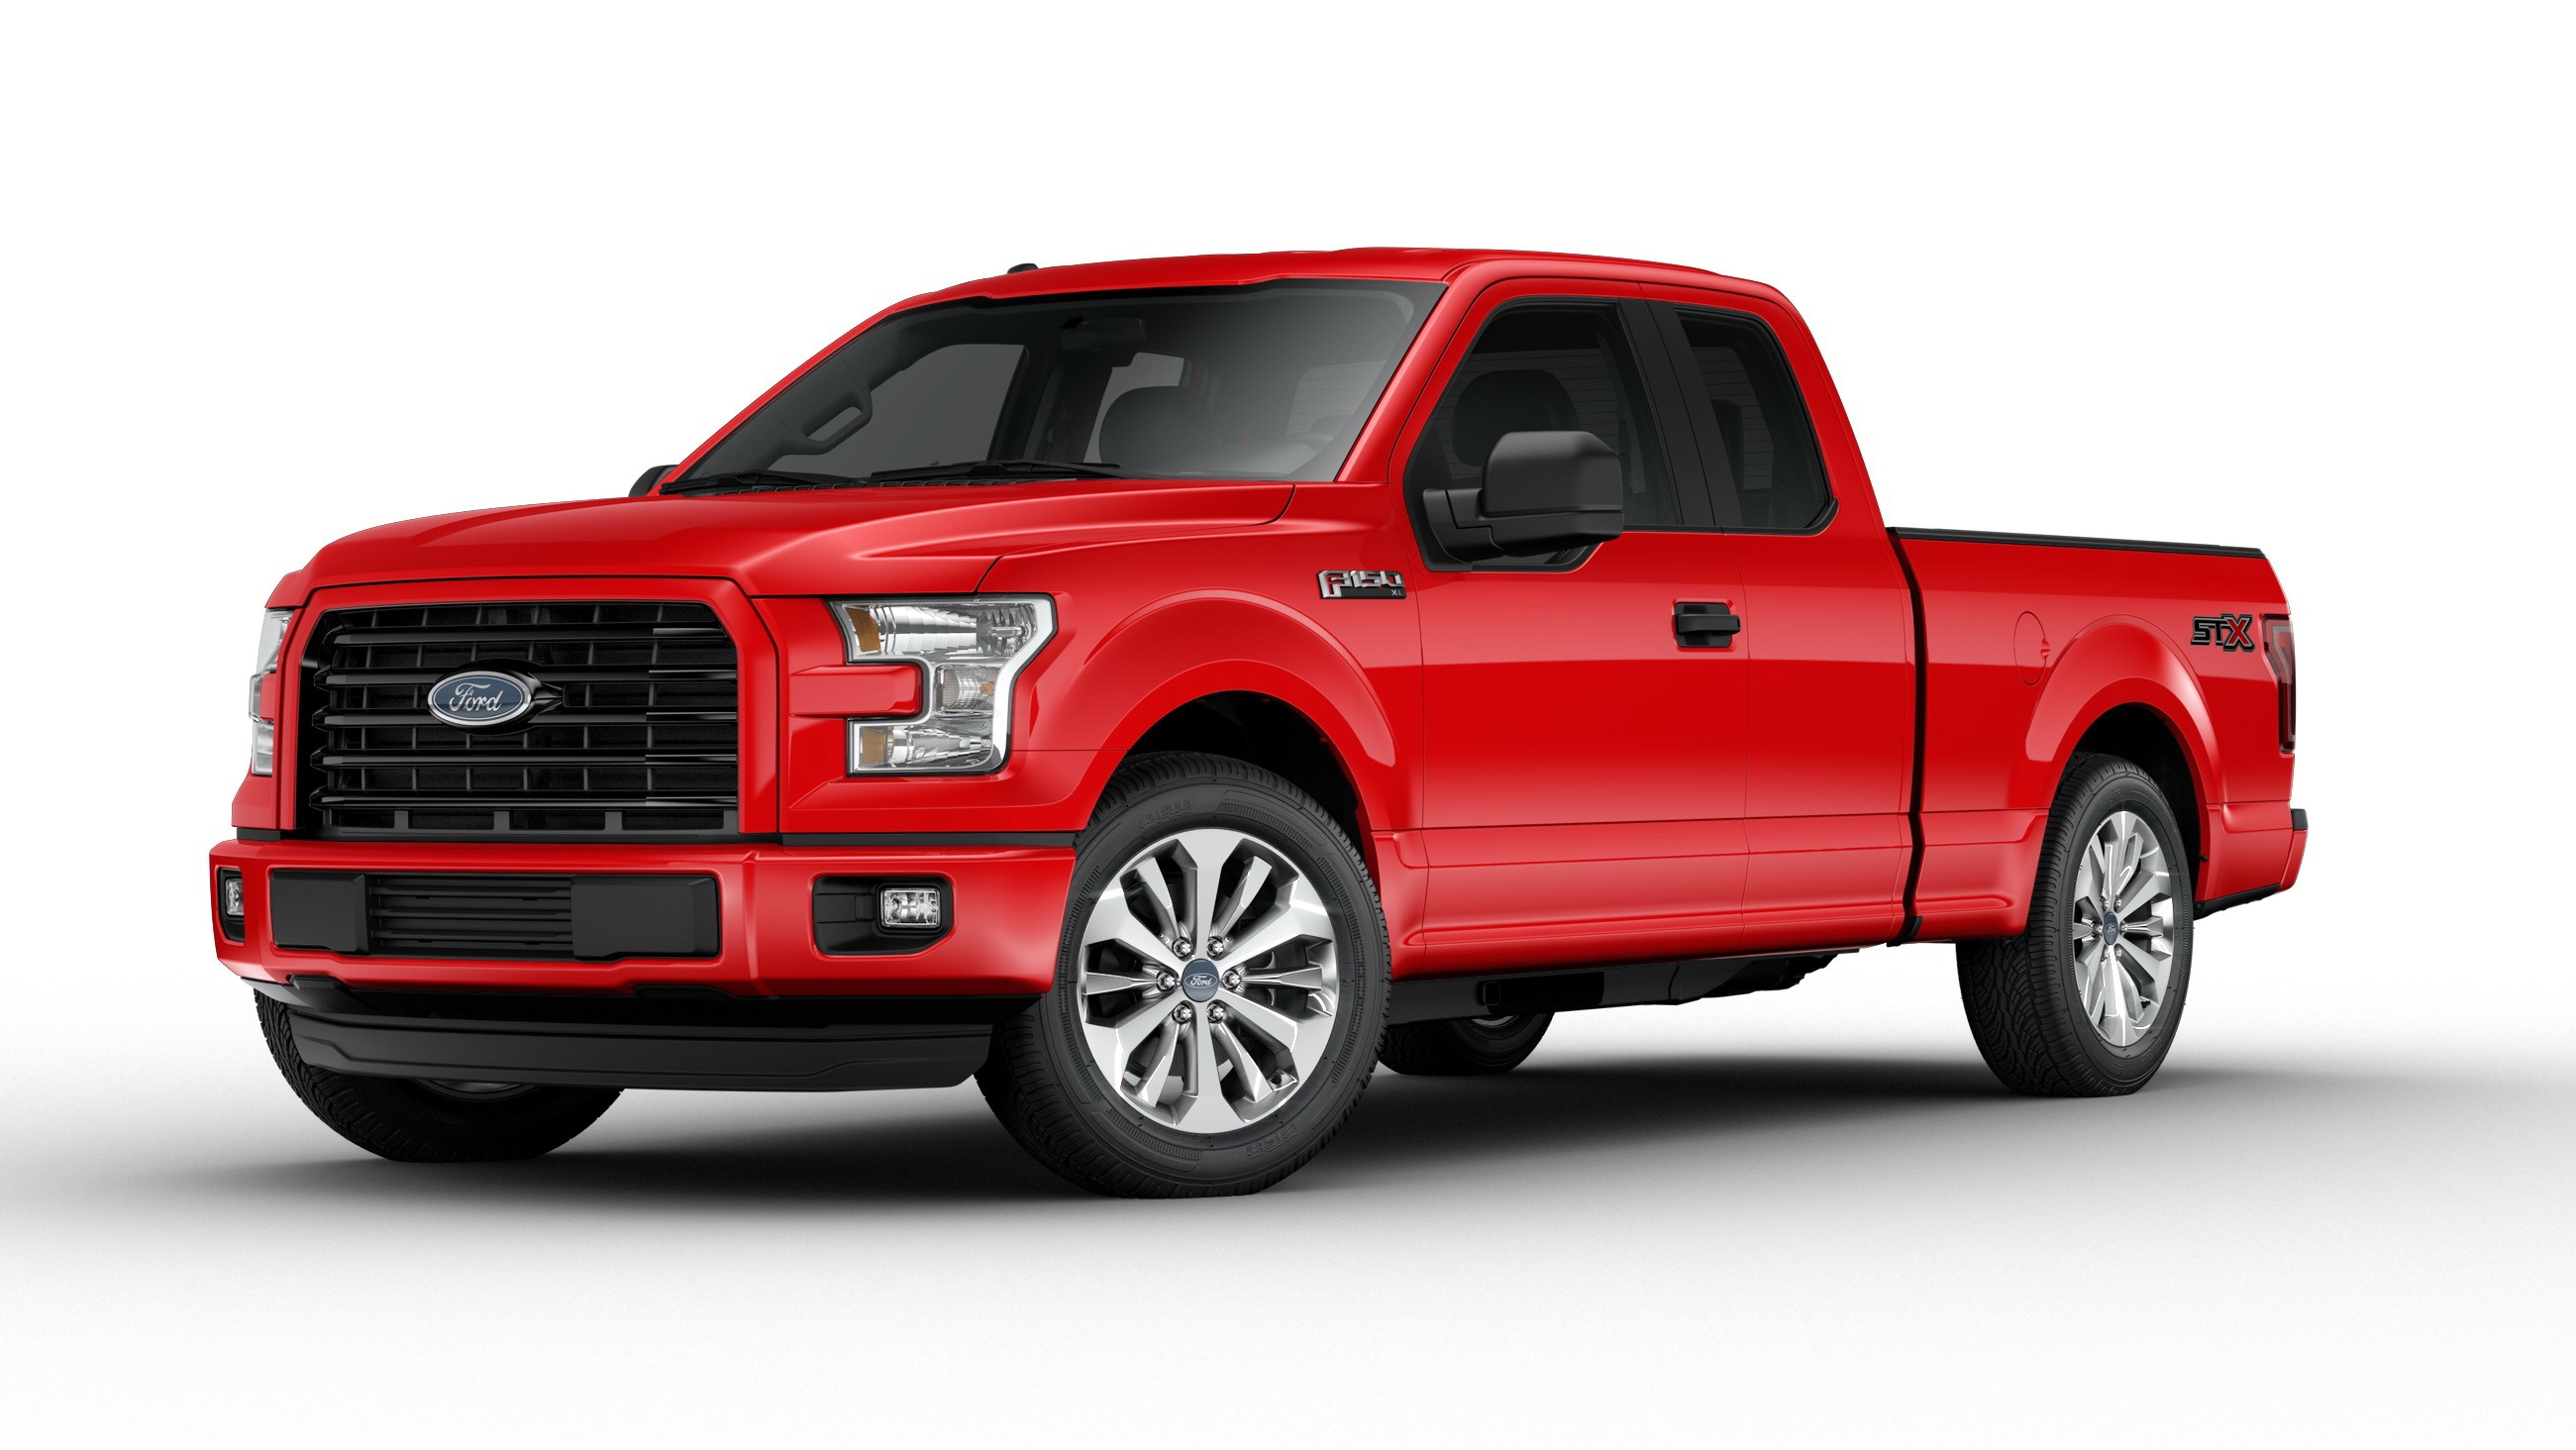 Ford is reintroducing the value minded stx trim package for the 2017 f 150 and for the first time offering it on the super duty line